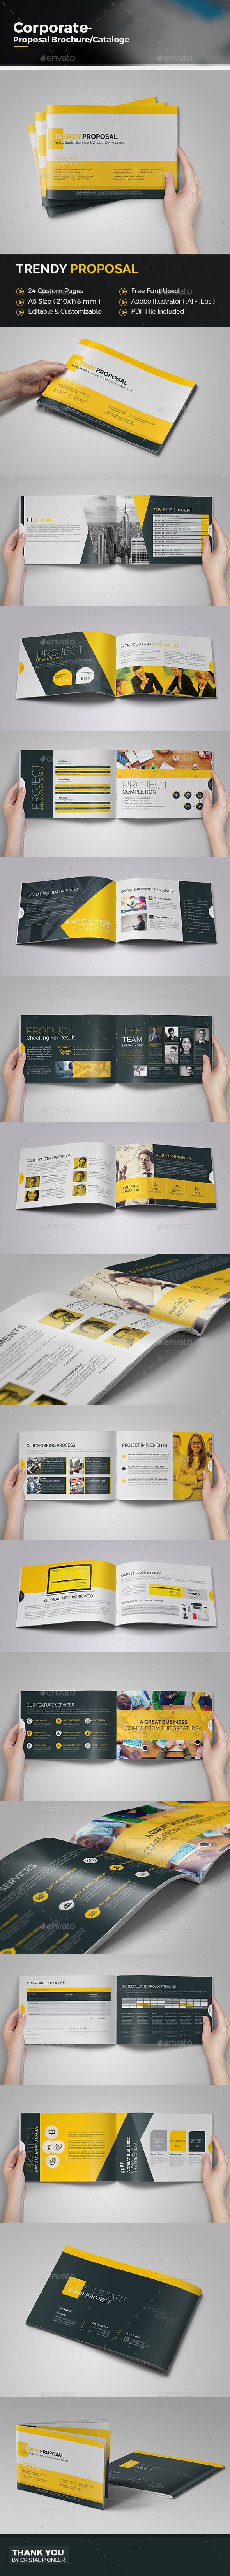 Best Images About Zj On   Behance Stationery And